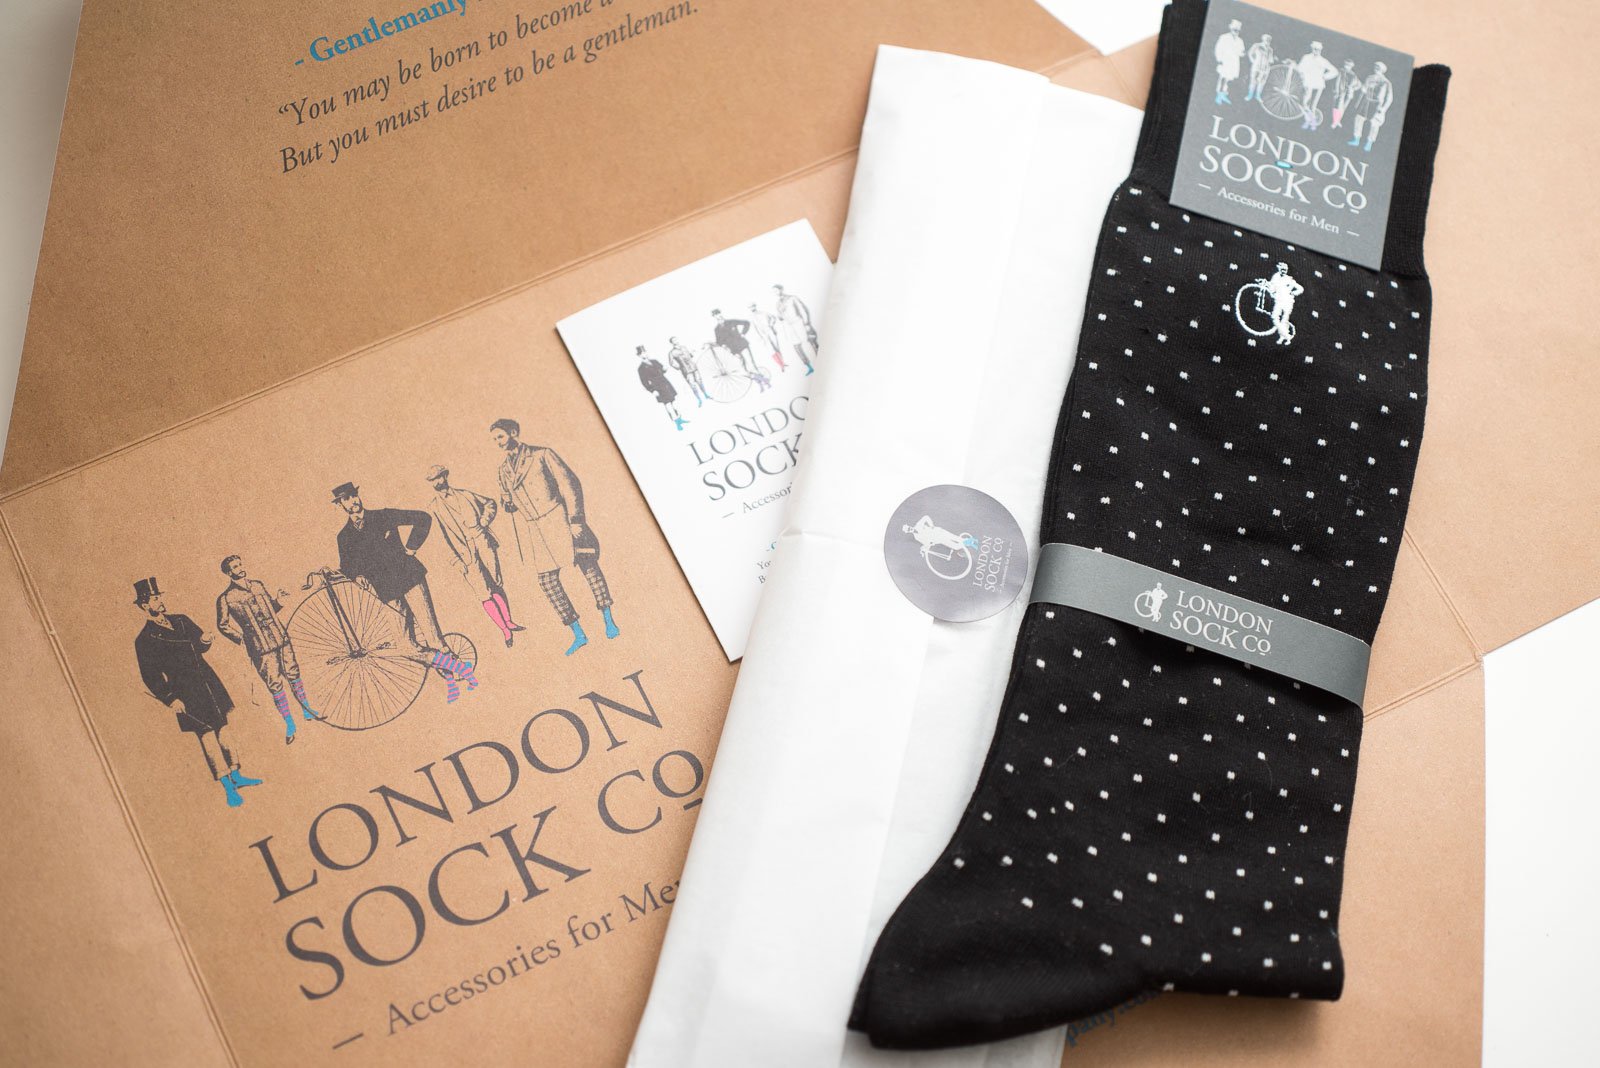 Subscription Sock Club from £10 per month